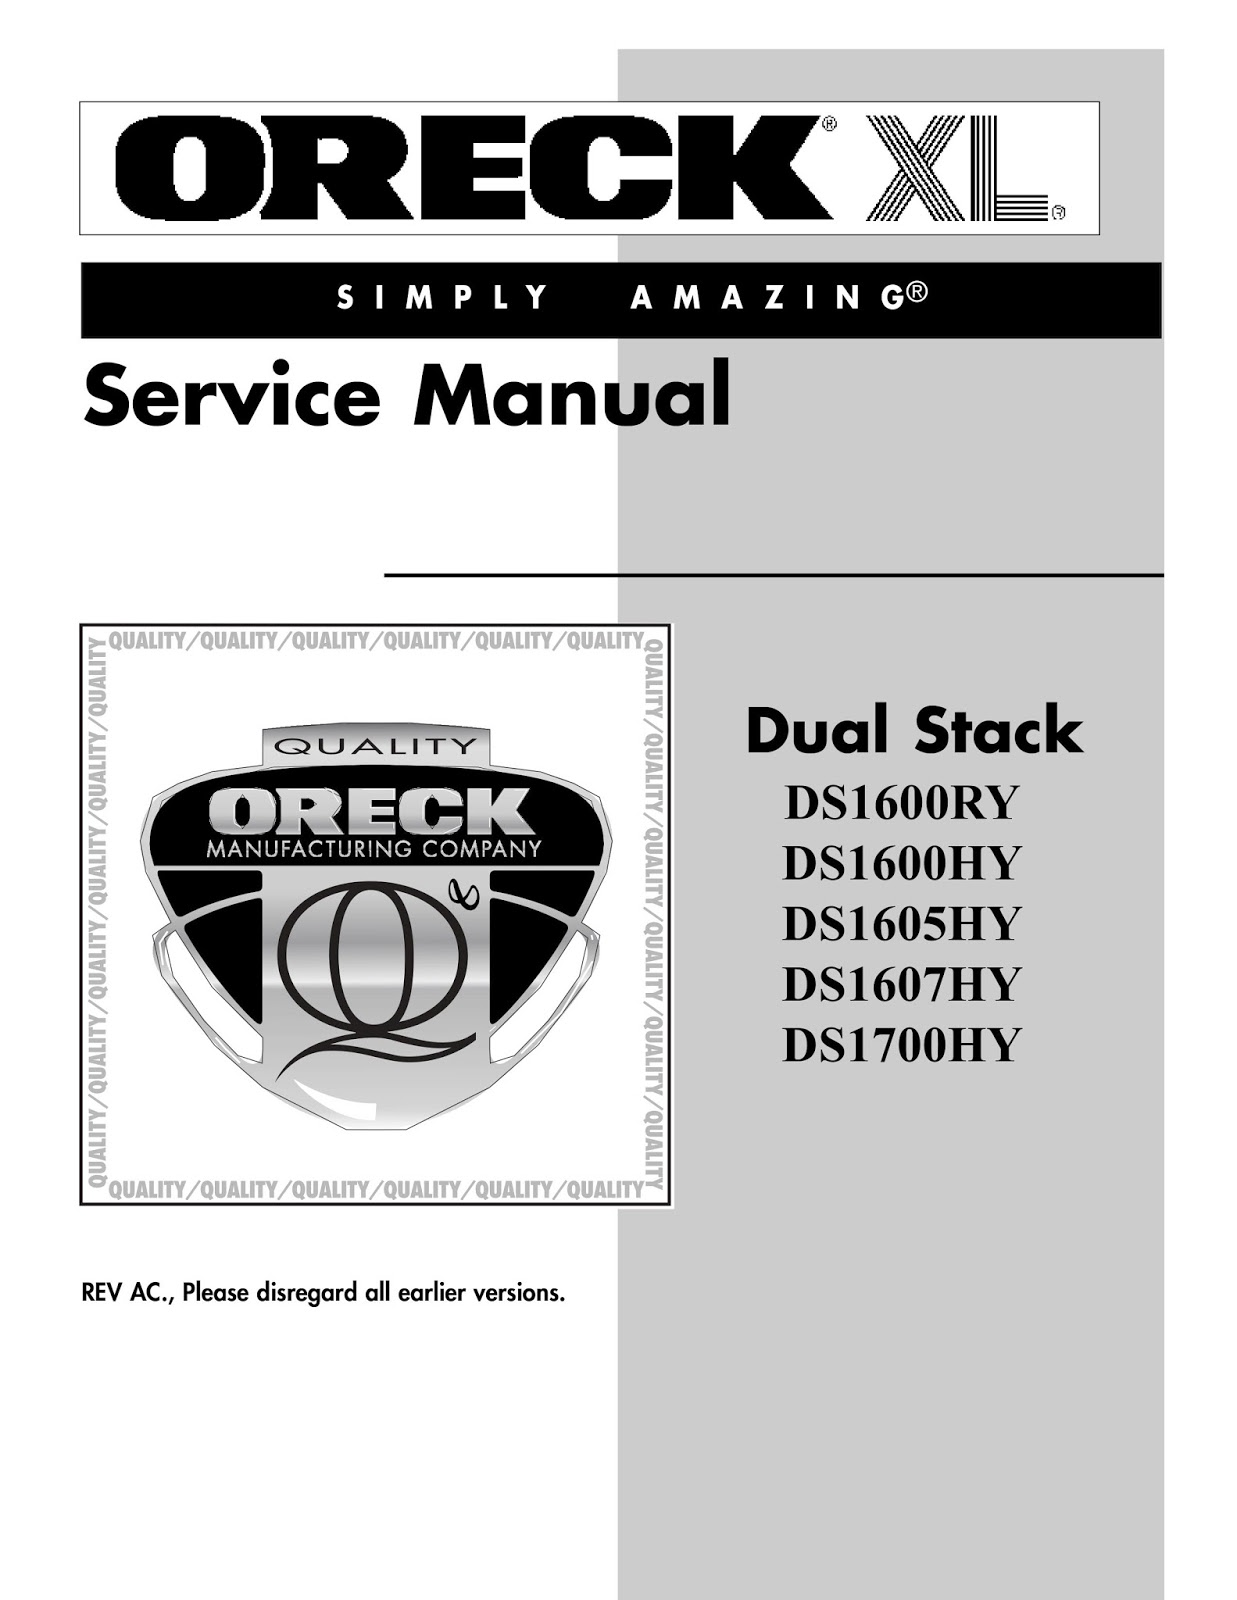 Oreck Dual Stack Service Manual Motor Wiring Diagram This Is A Parts For The Cleaner Machine I Have Never Actually Seen Before But It Looks Like Image